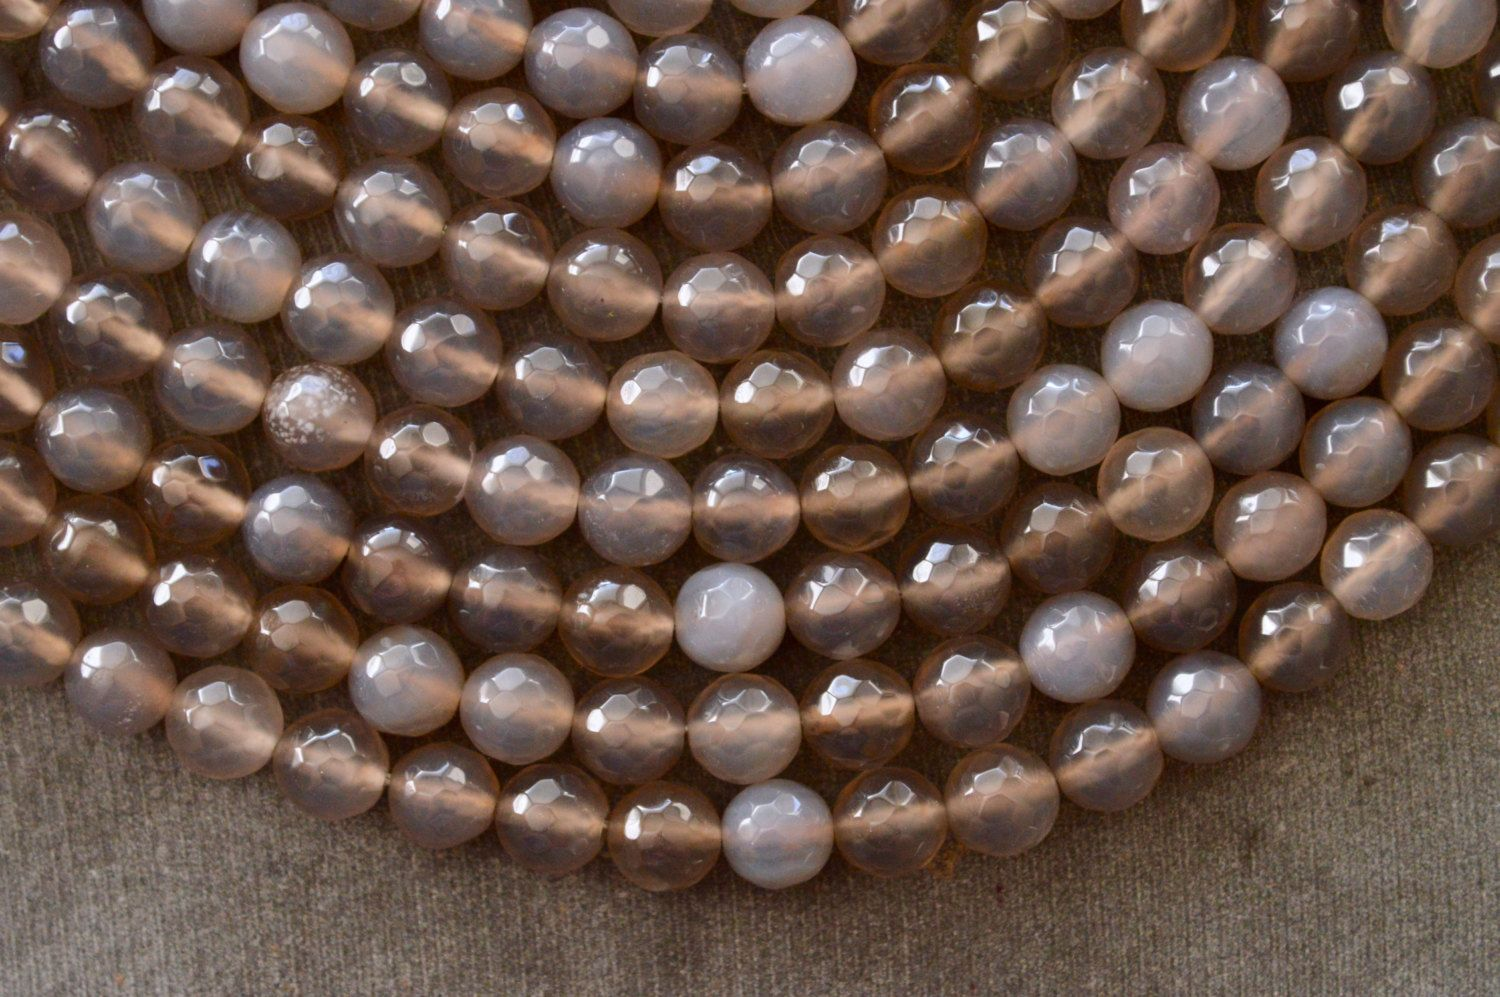 8mm Gray Agate Stone Beads, Gemstone, Faceted Agate, 10 Beads, Gray Stone Beads Mala Beads 8mm Stone Beads by TheBeadBandit on Etsy